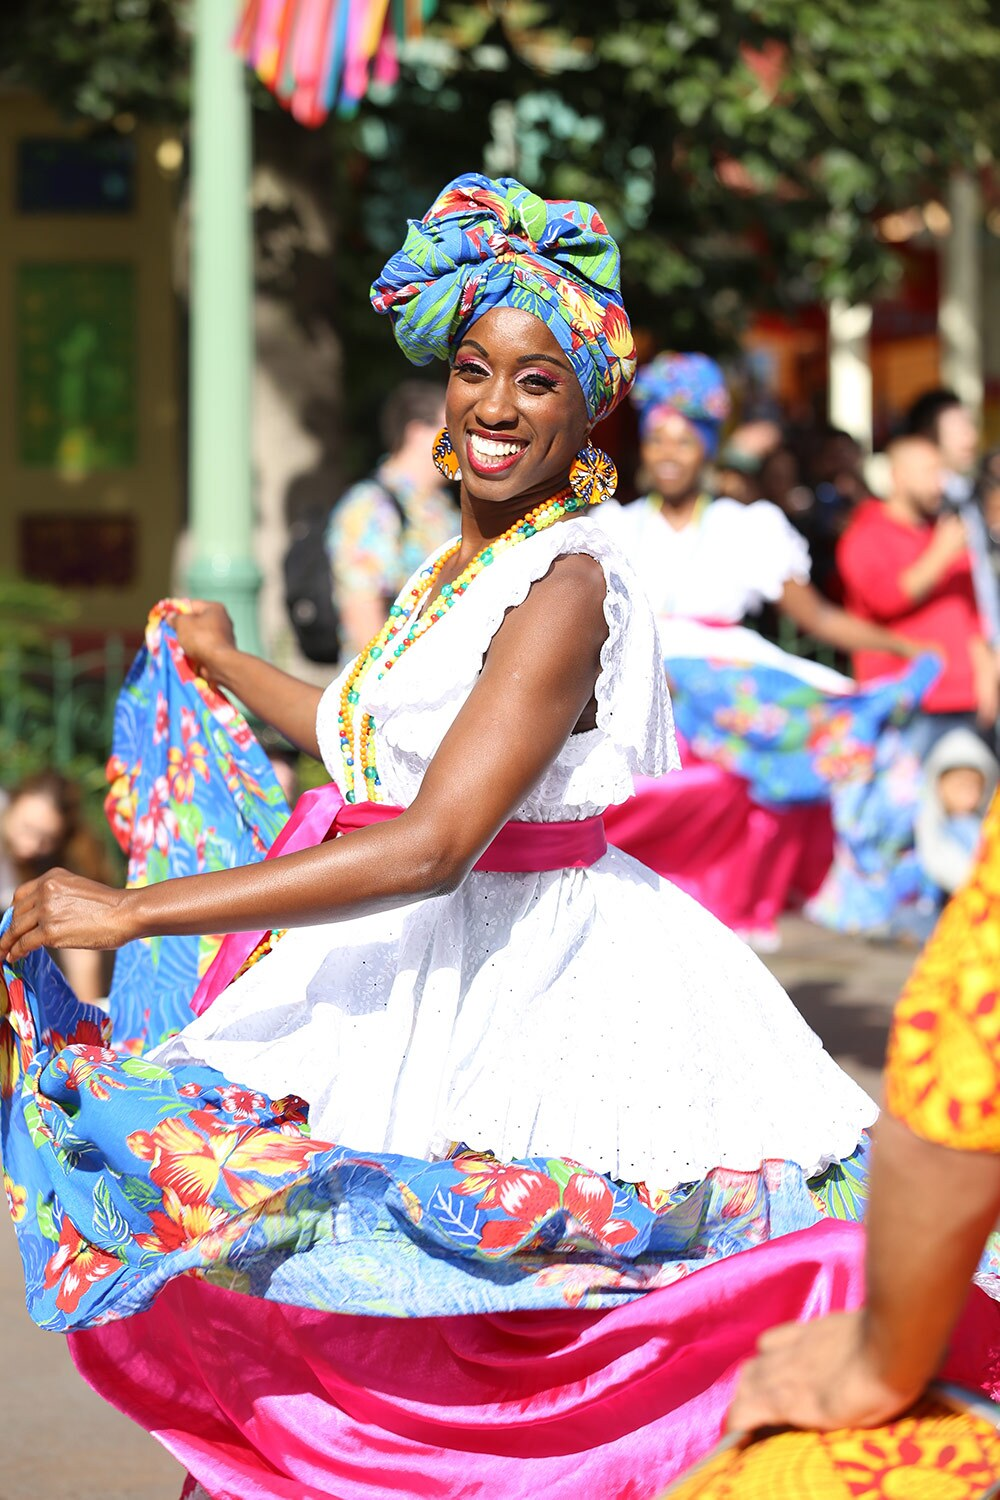 Laroyeana, a Viver Brasil dancer, during Disney California Adventure Park's ¡Viva Navidad! Street Party parade | Courtesy of Viver Brasil